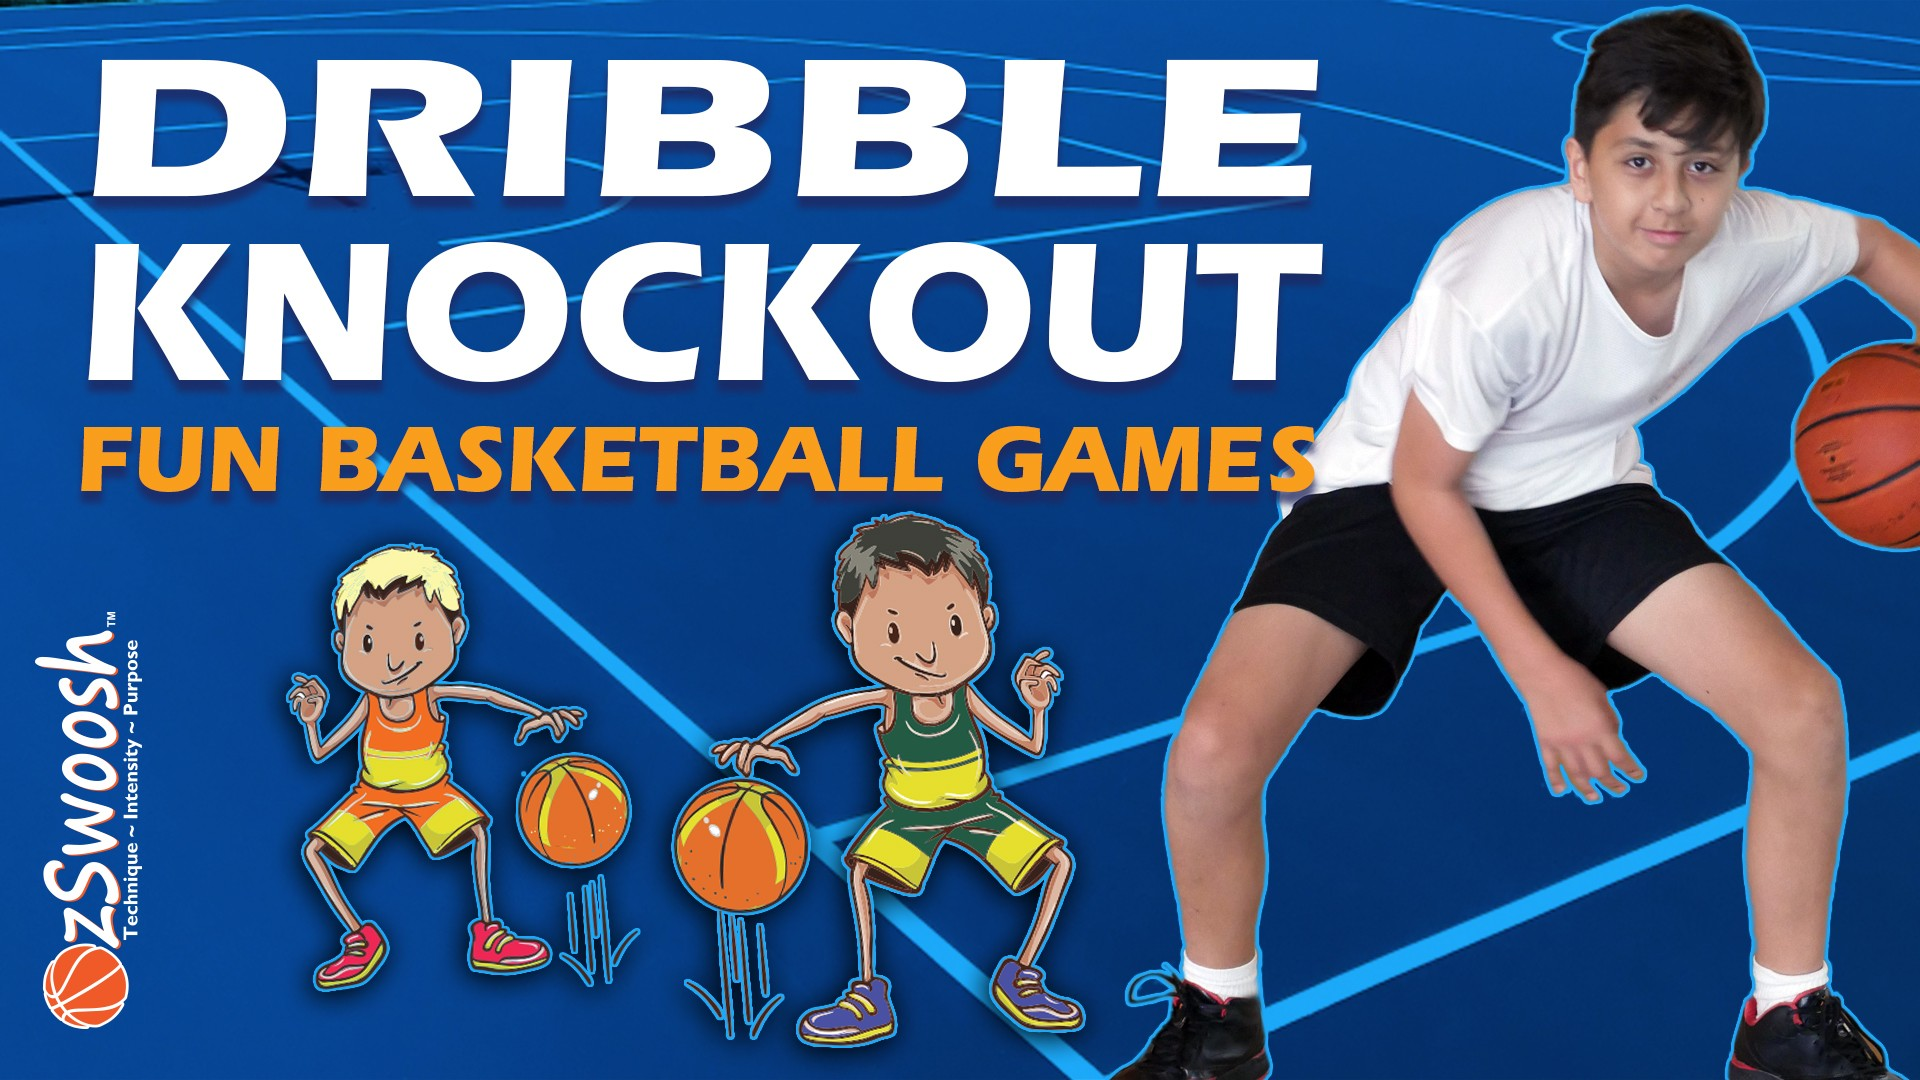 Fun Basketball Drill for Kids - Dribble Knockout (Dribbling Game)